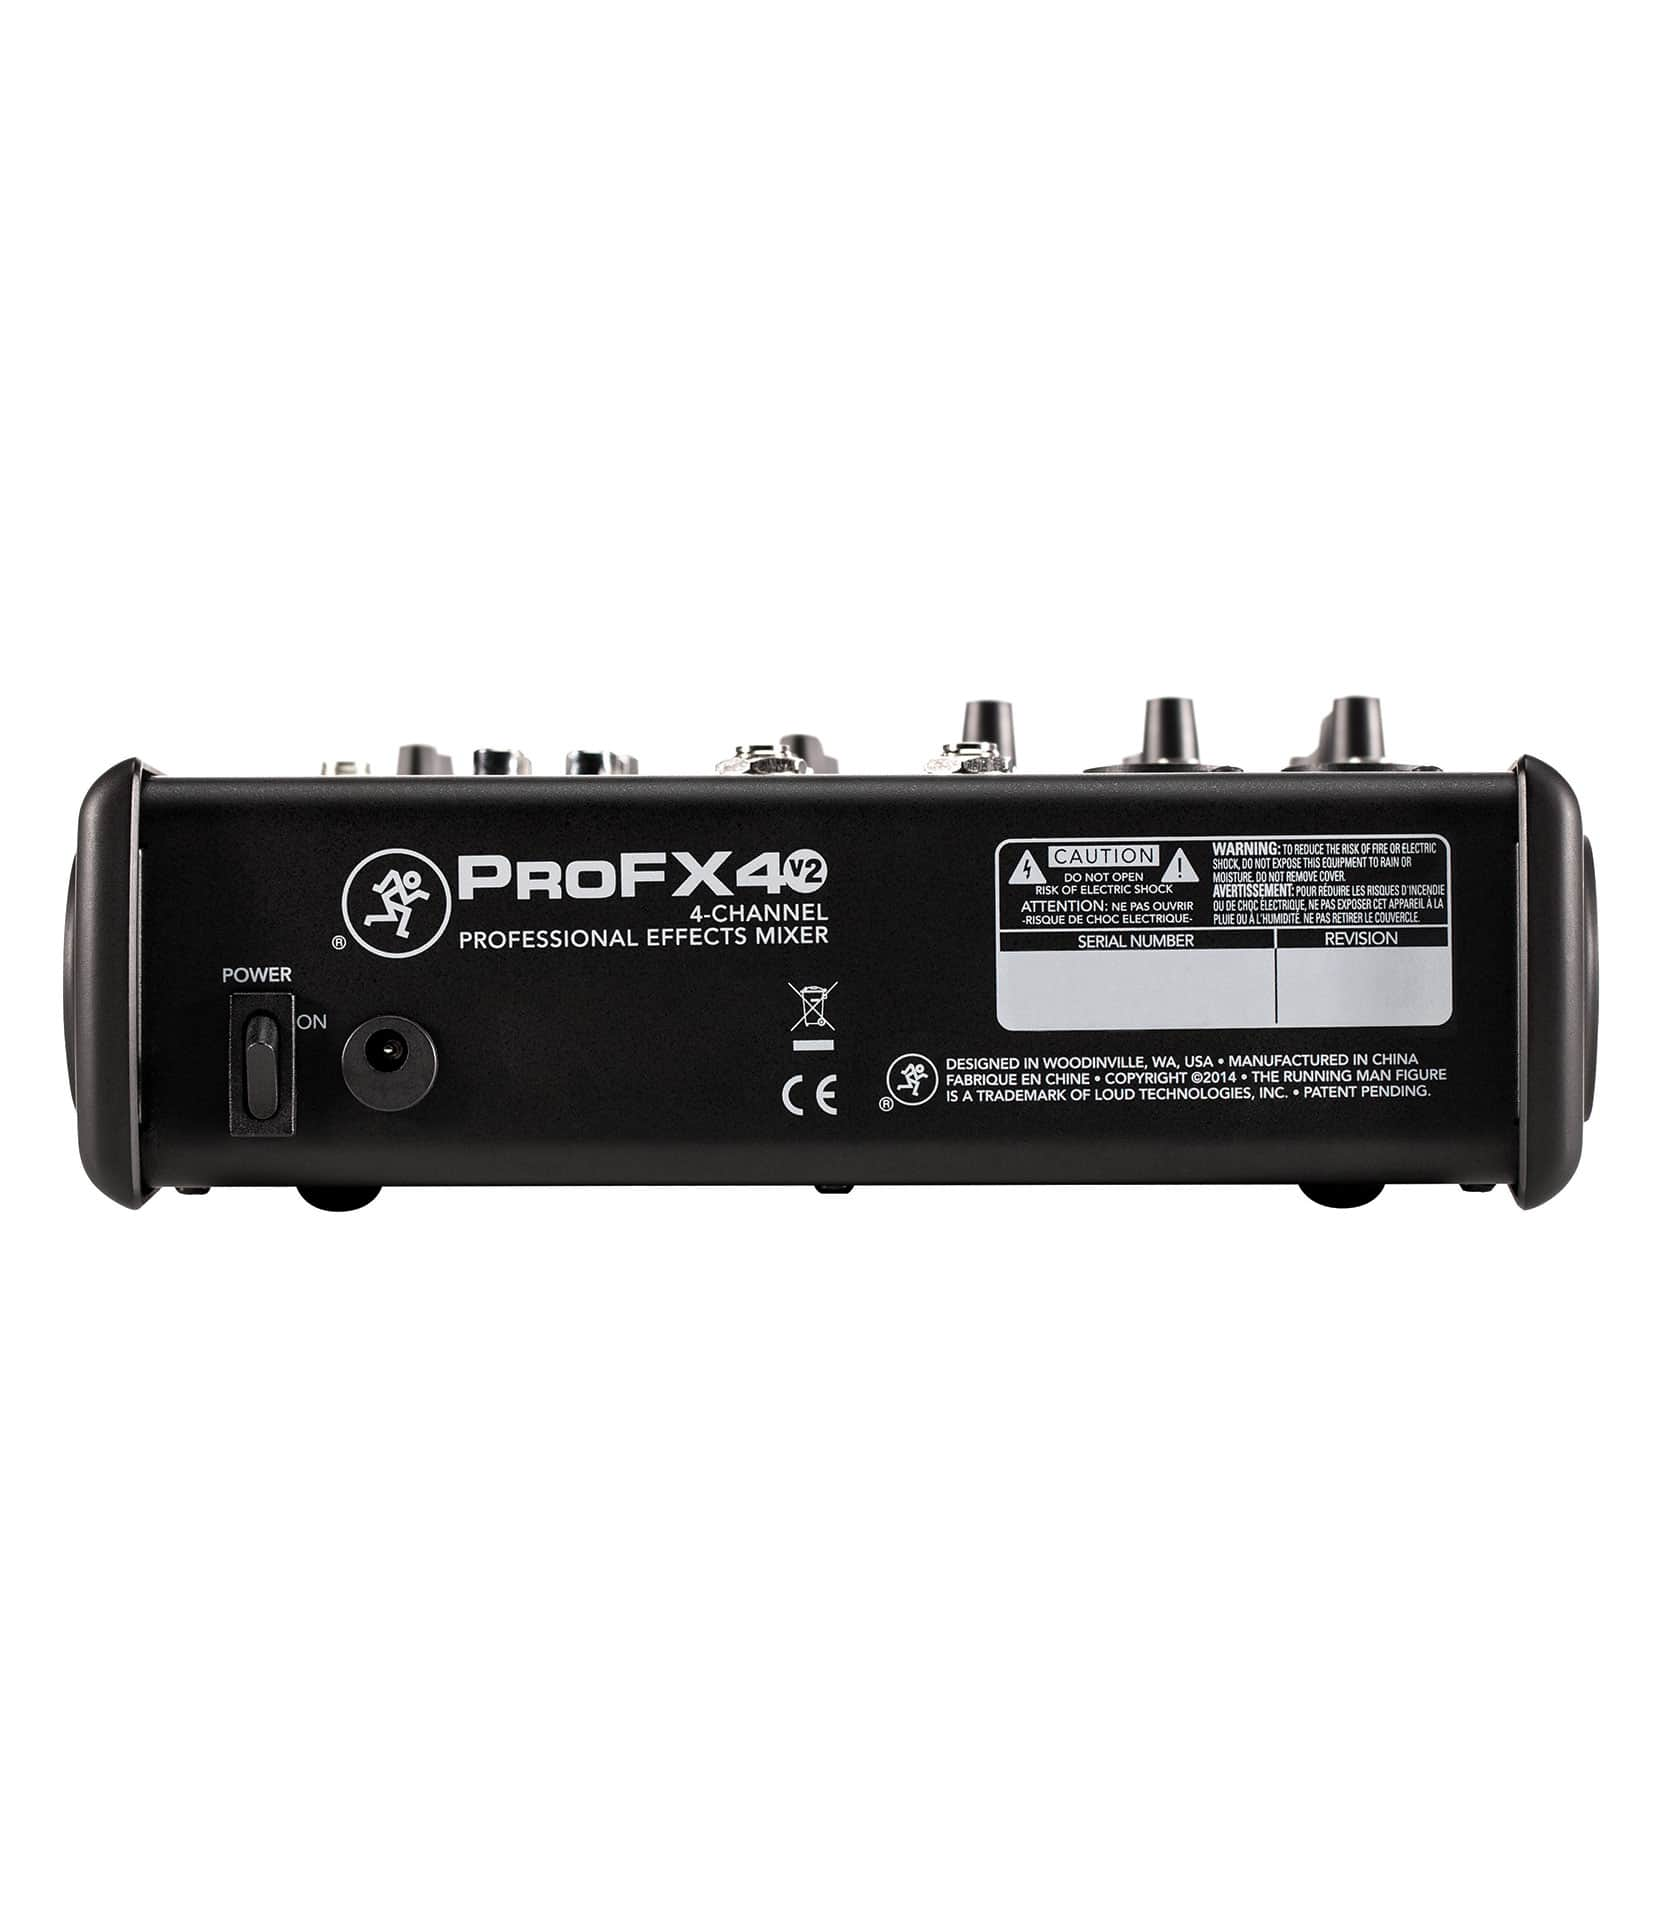 ProFX4v2 UK 4 channel Professional Effects Mixer - Buy Online